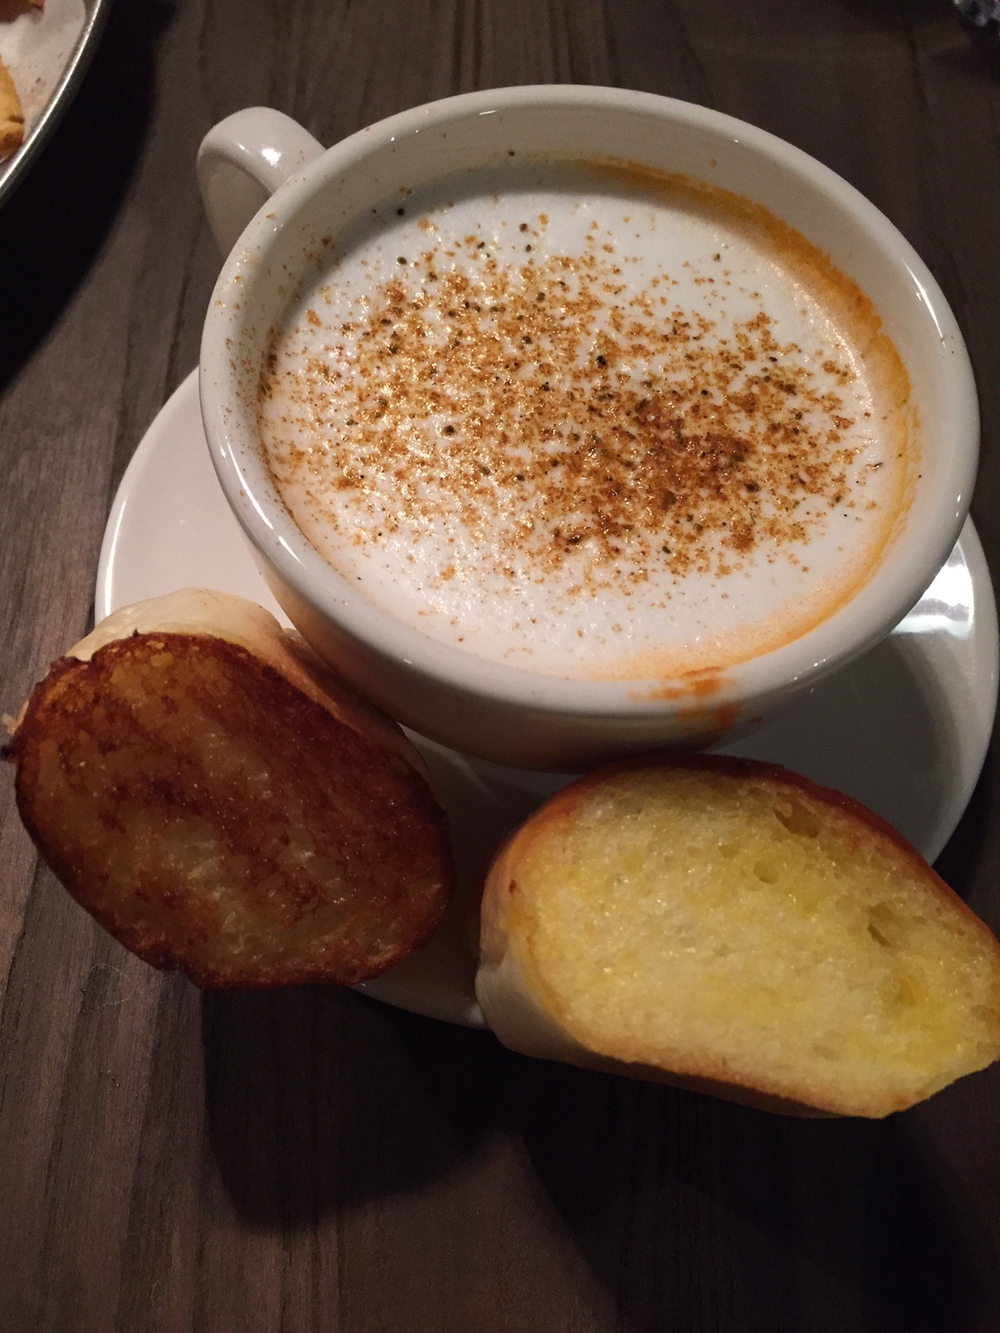 "New item - ""Lobster Cappuccino: lobster bisque, lobster meat served with bread.' 7000won.   Presentation was great and it came out looking exactly like a cappuccino would with two small pieces of buttery toasted soft bread.    The bread was also super soft, nicely toasted and buttered and although I normally don't like to fill up on the bread, this bread was so good it was gone in a second!"